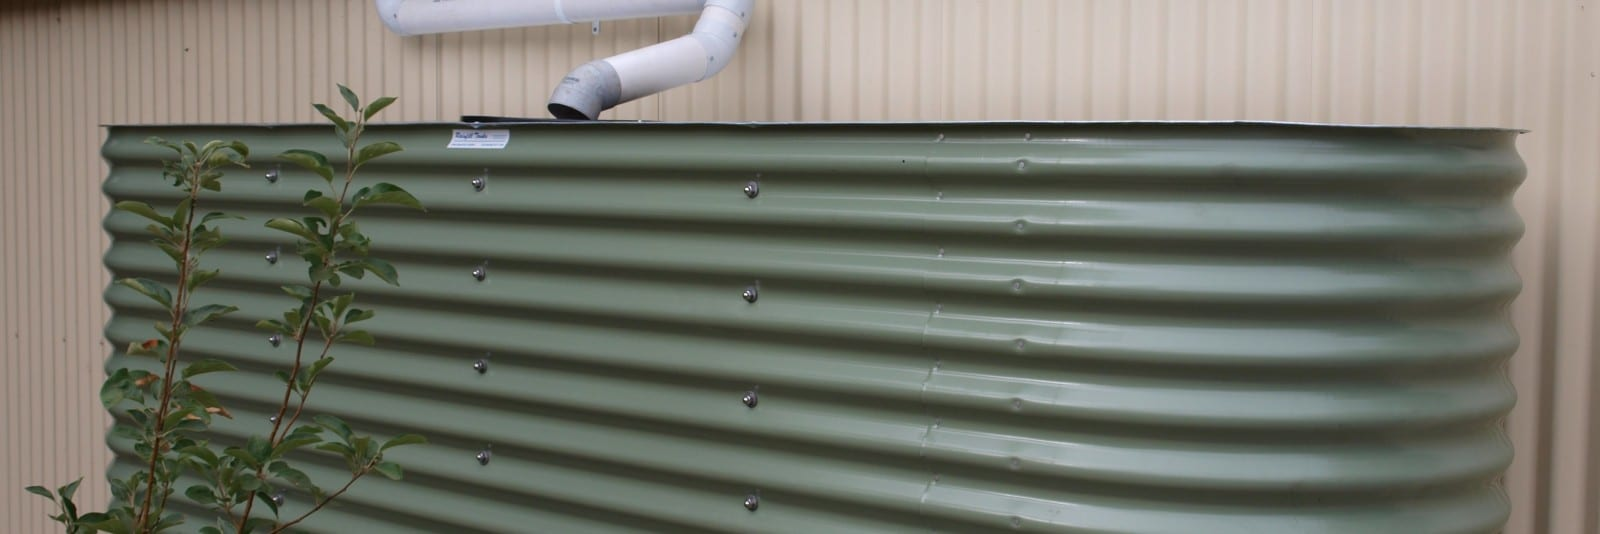 Supplying rainwater tanks in Perth WA